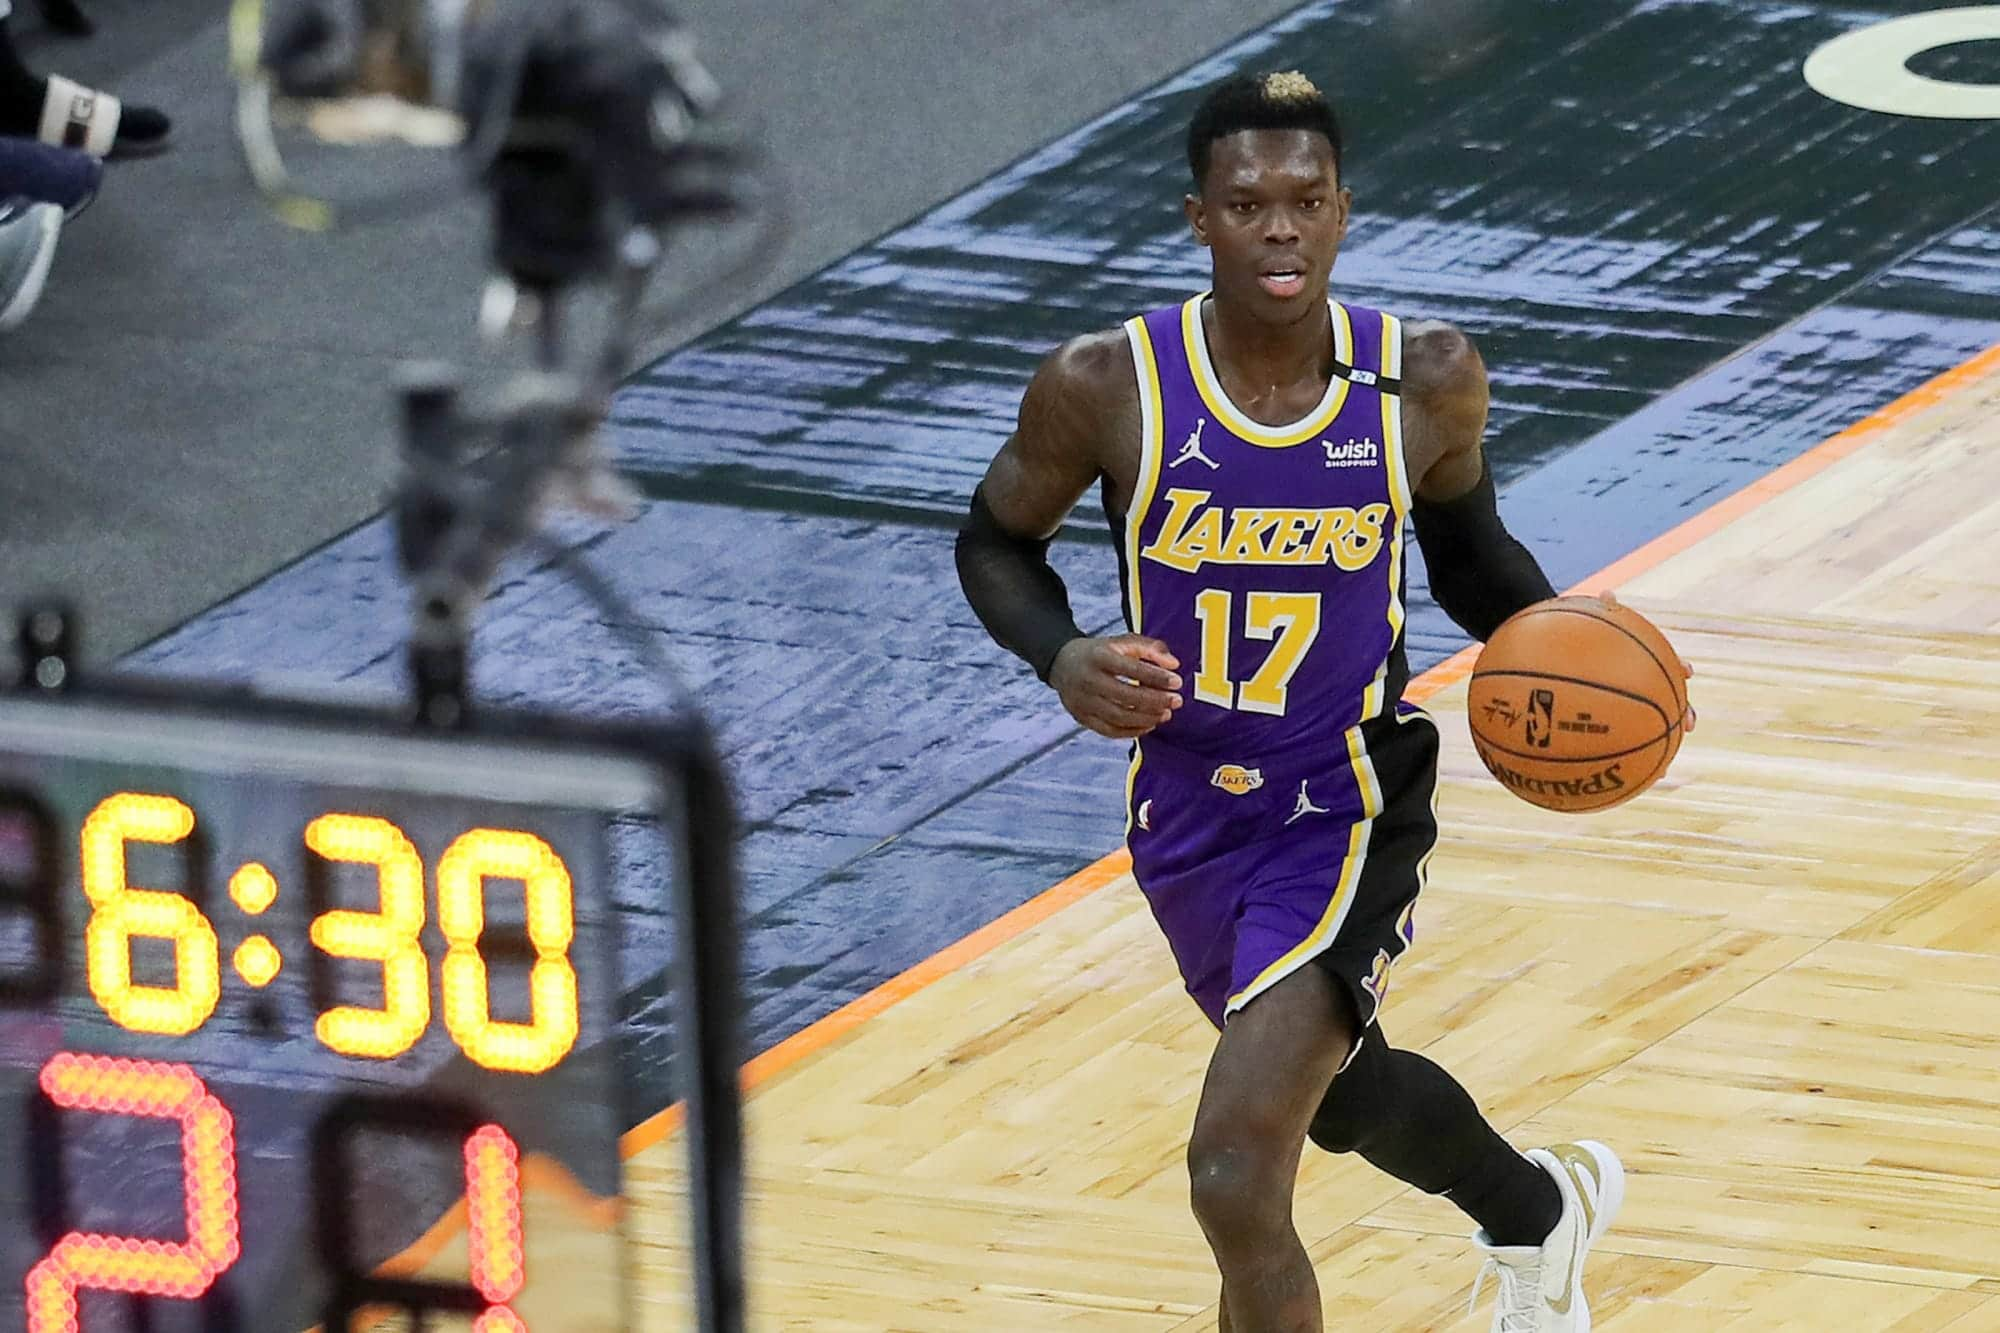 lakers-followers-roast-dennis-schroder-over-lack-of-suitors-after-rejecting-contract-provide.jpeg